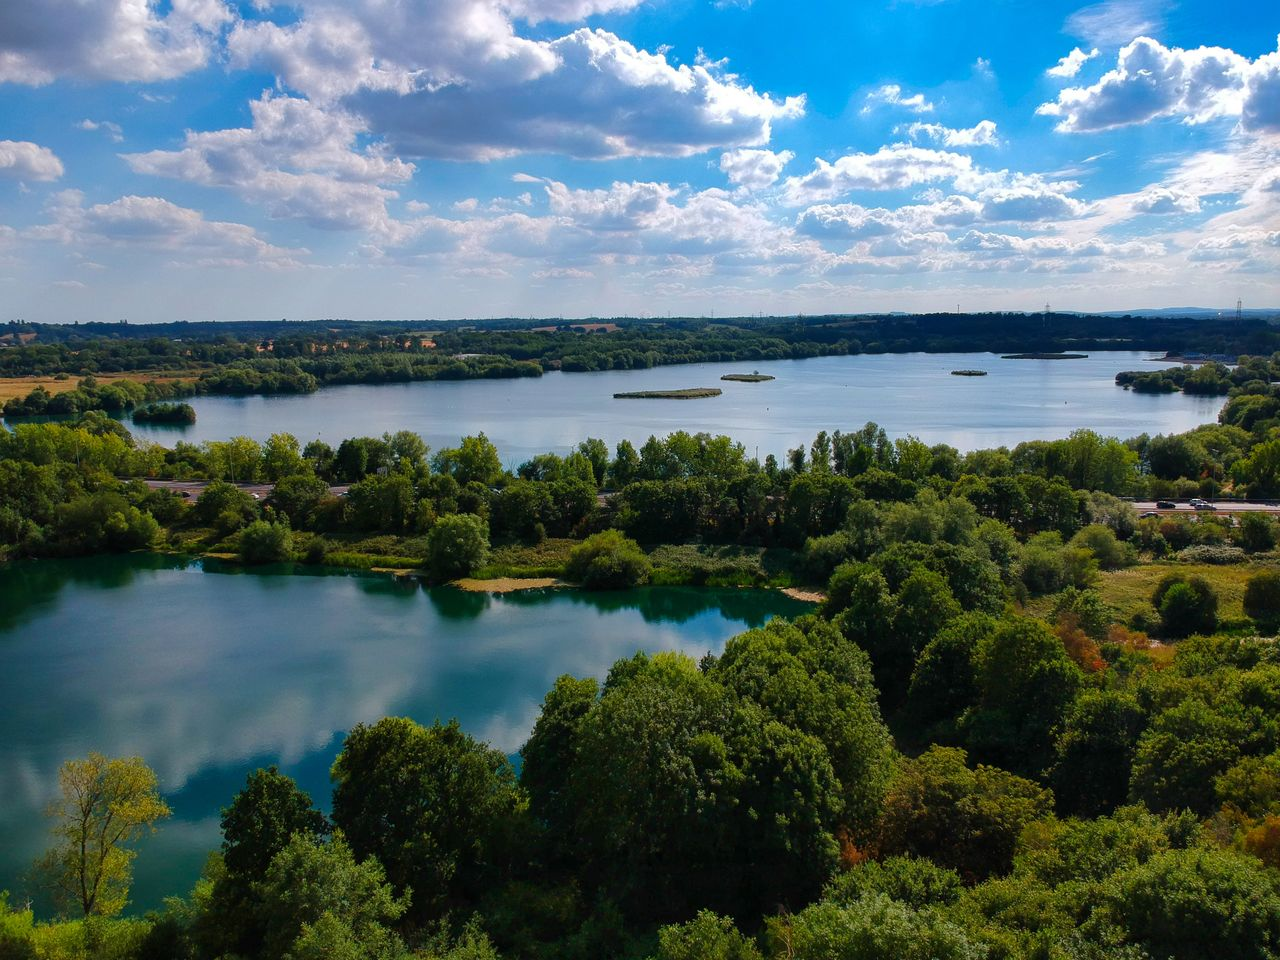 water, sky, cloud - sky, scenics - nature, tree, plant, tranquil scene, beauty in nature, tranquility, nature, no people, day, green color, growth, lake, outdoors, non-urban scene, land